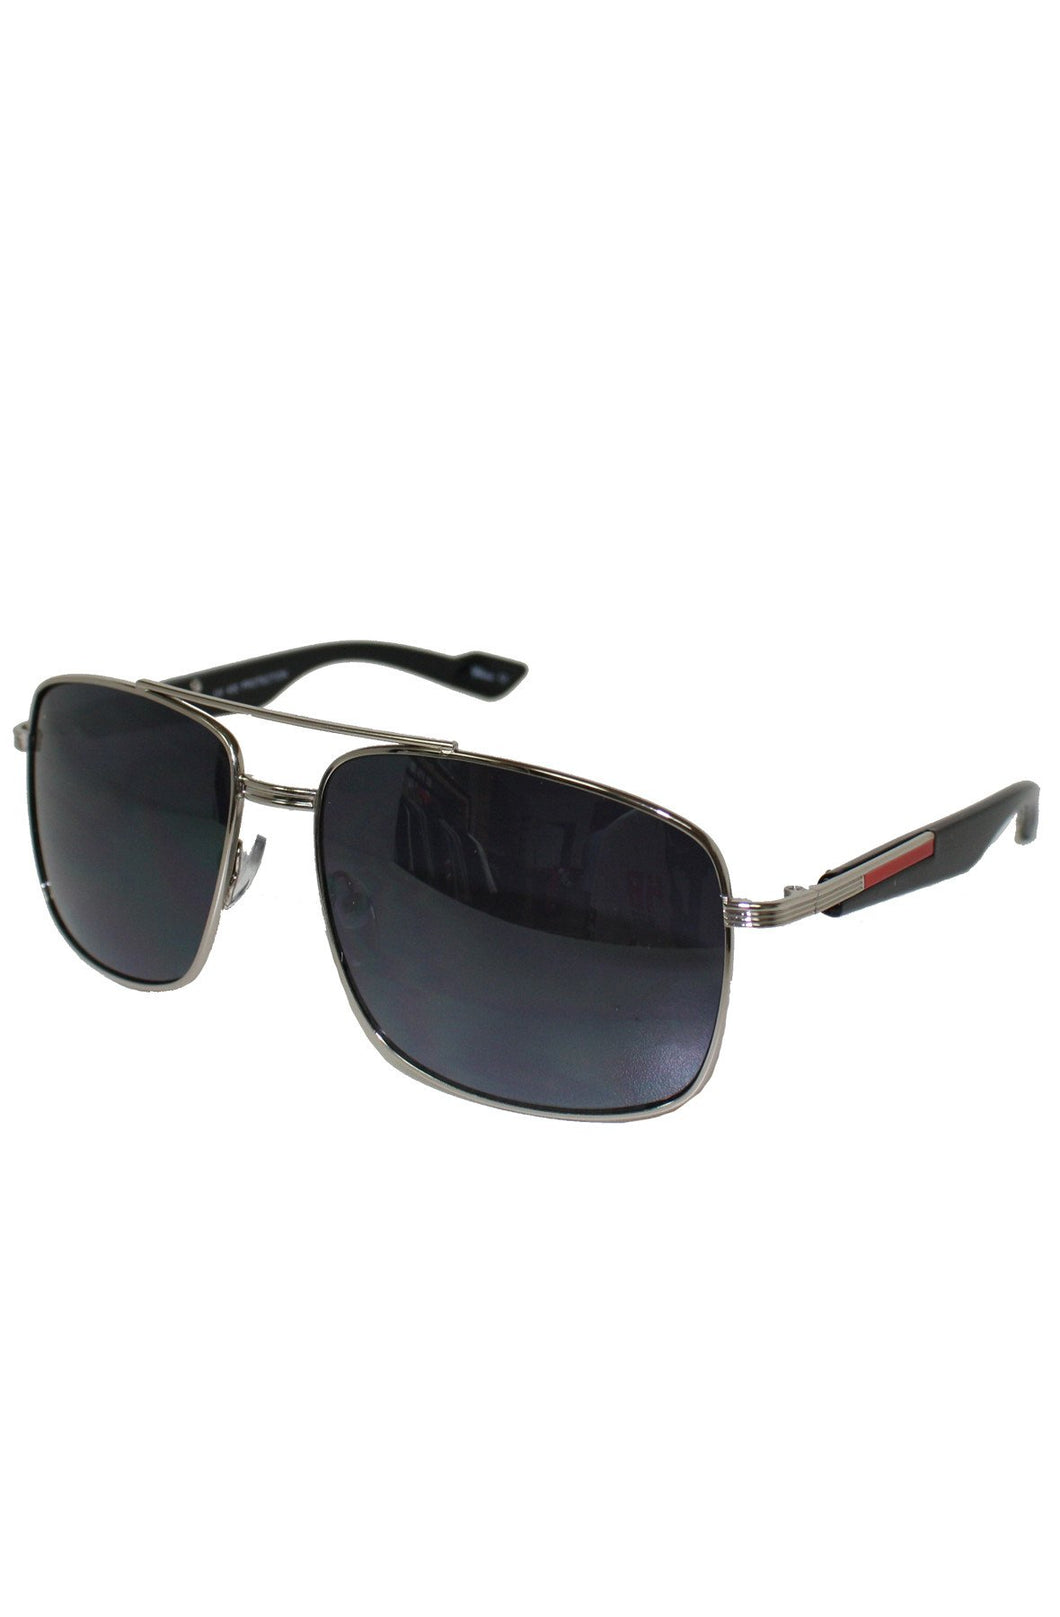 KUBANI SUNGLASSES